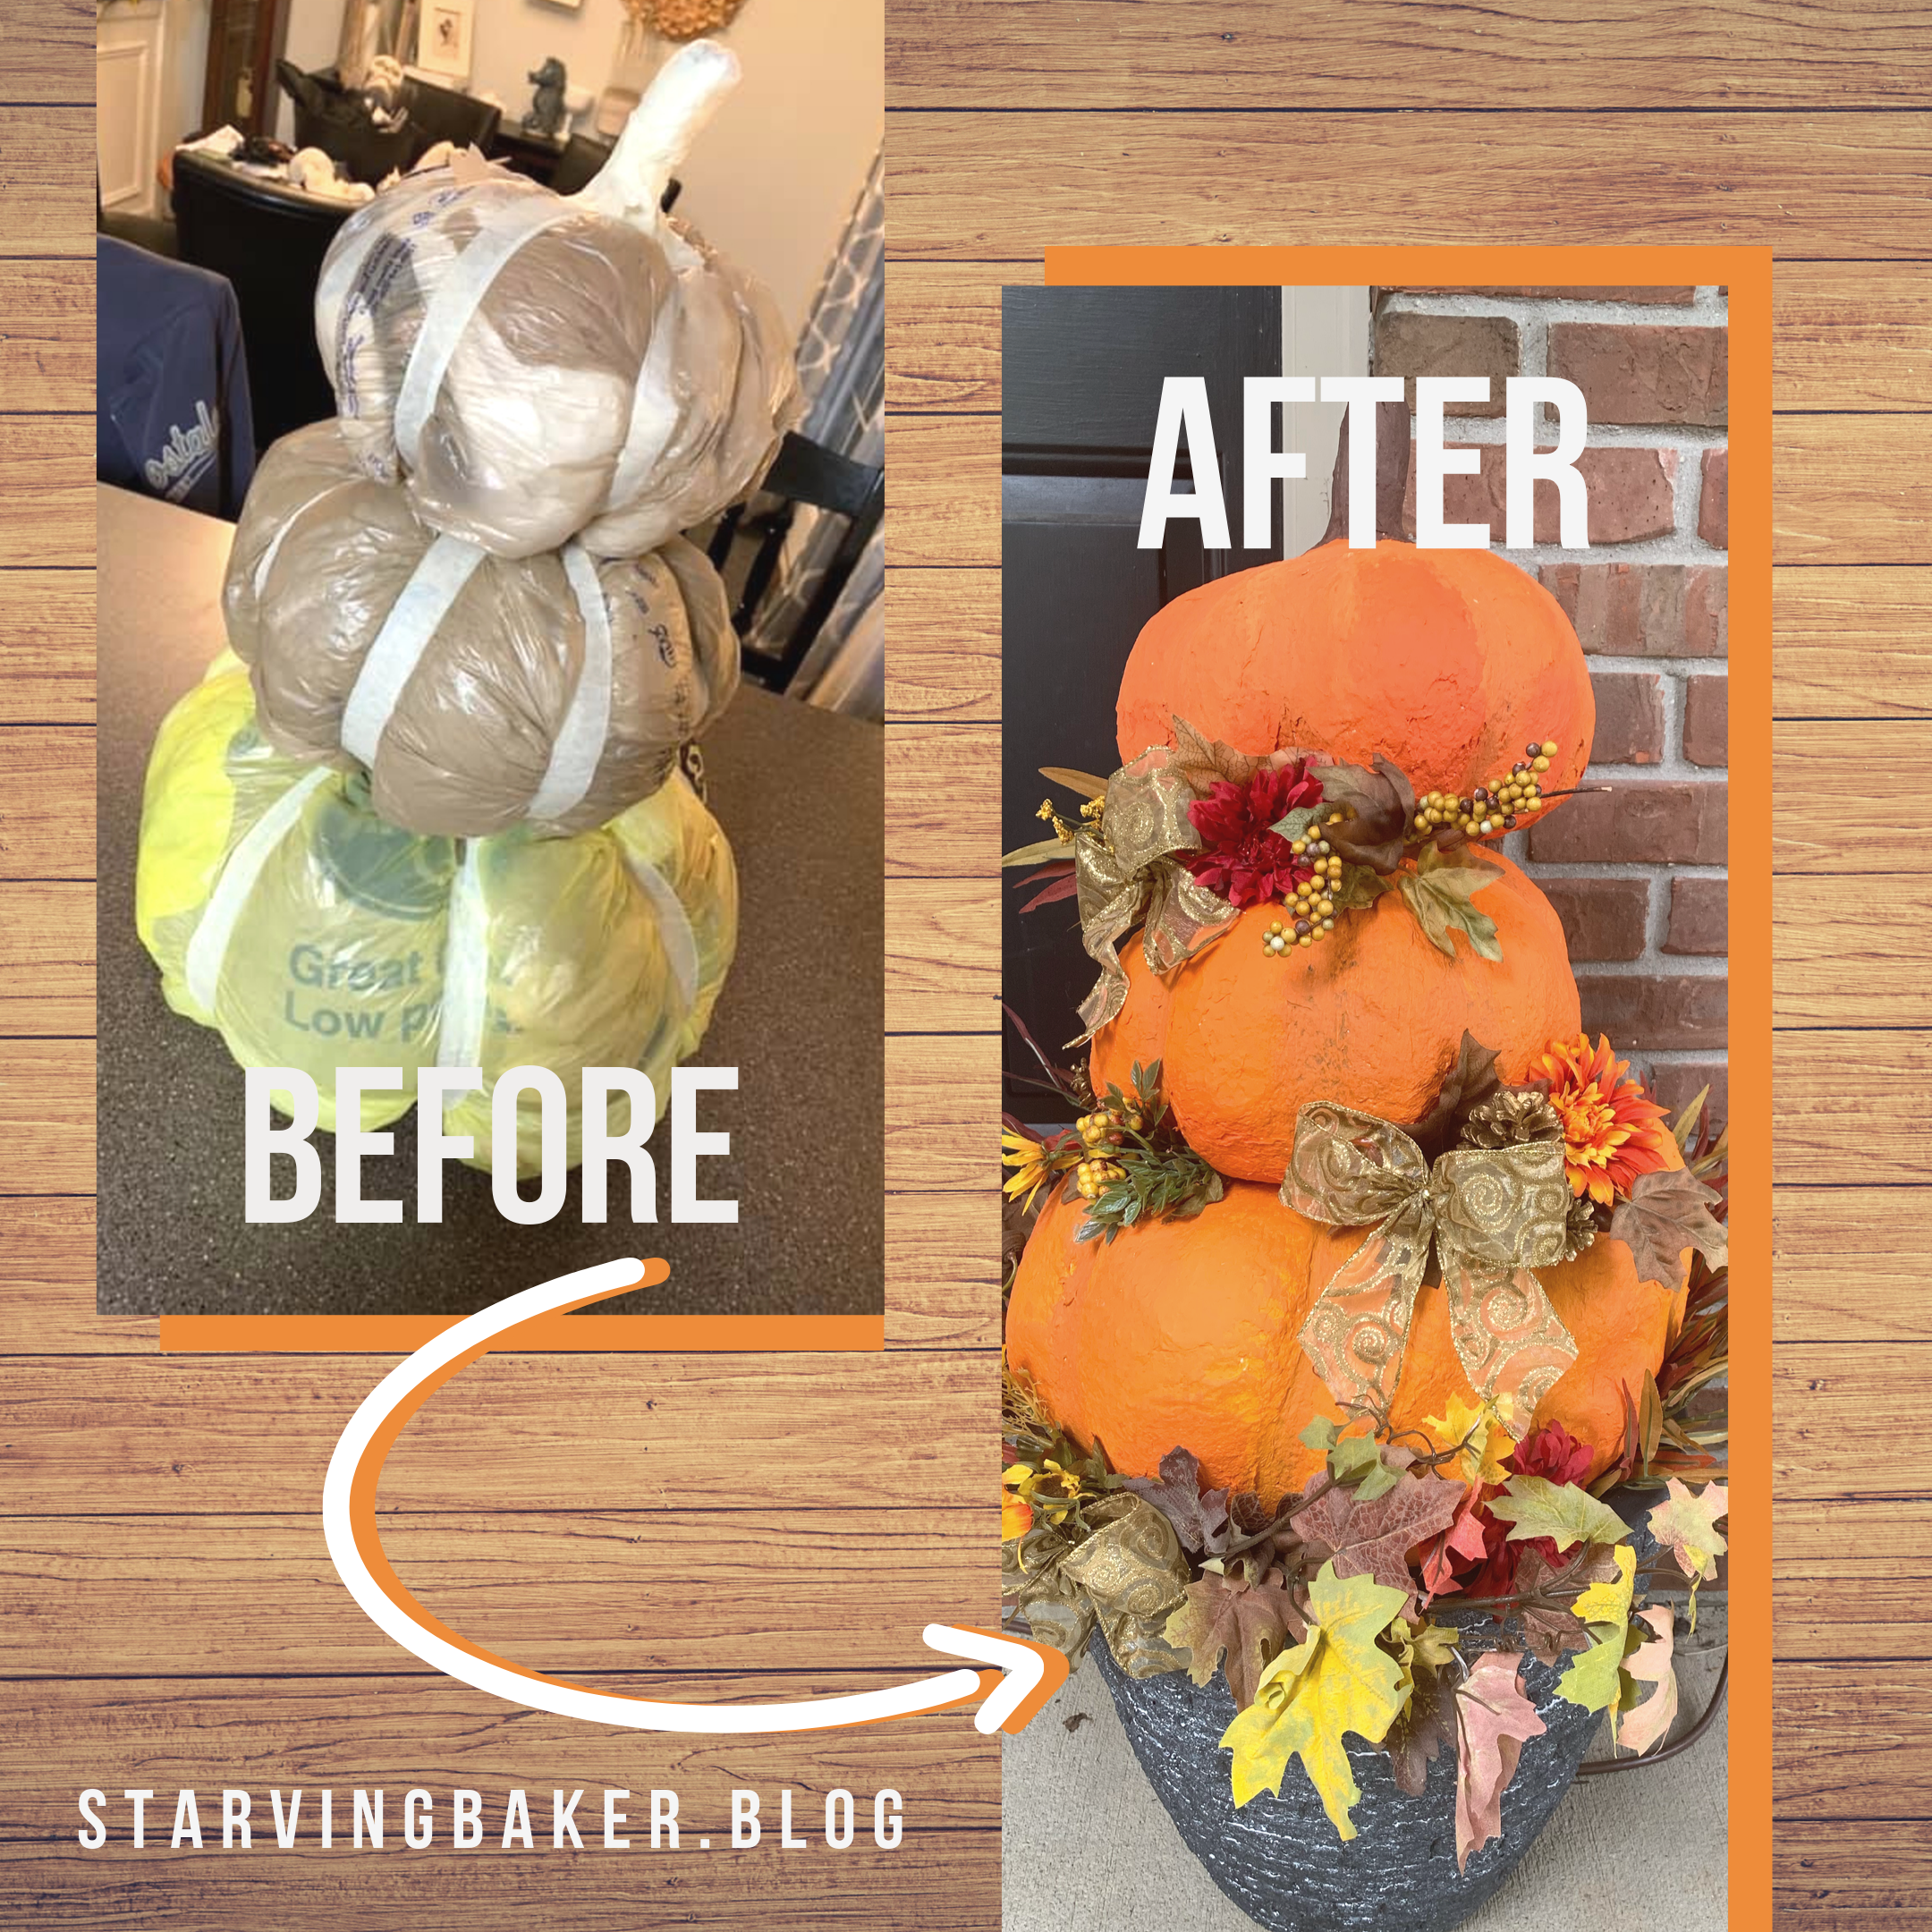 Before & After Pictures of Trash Pumpkins